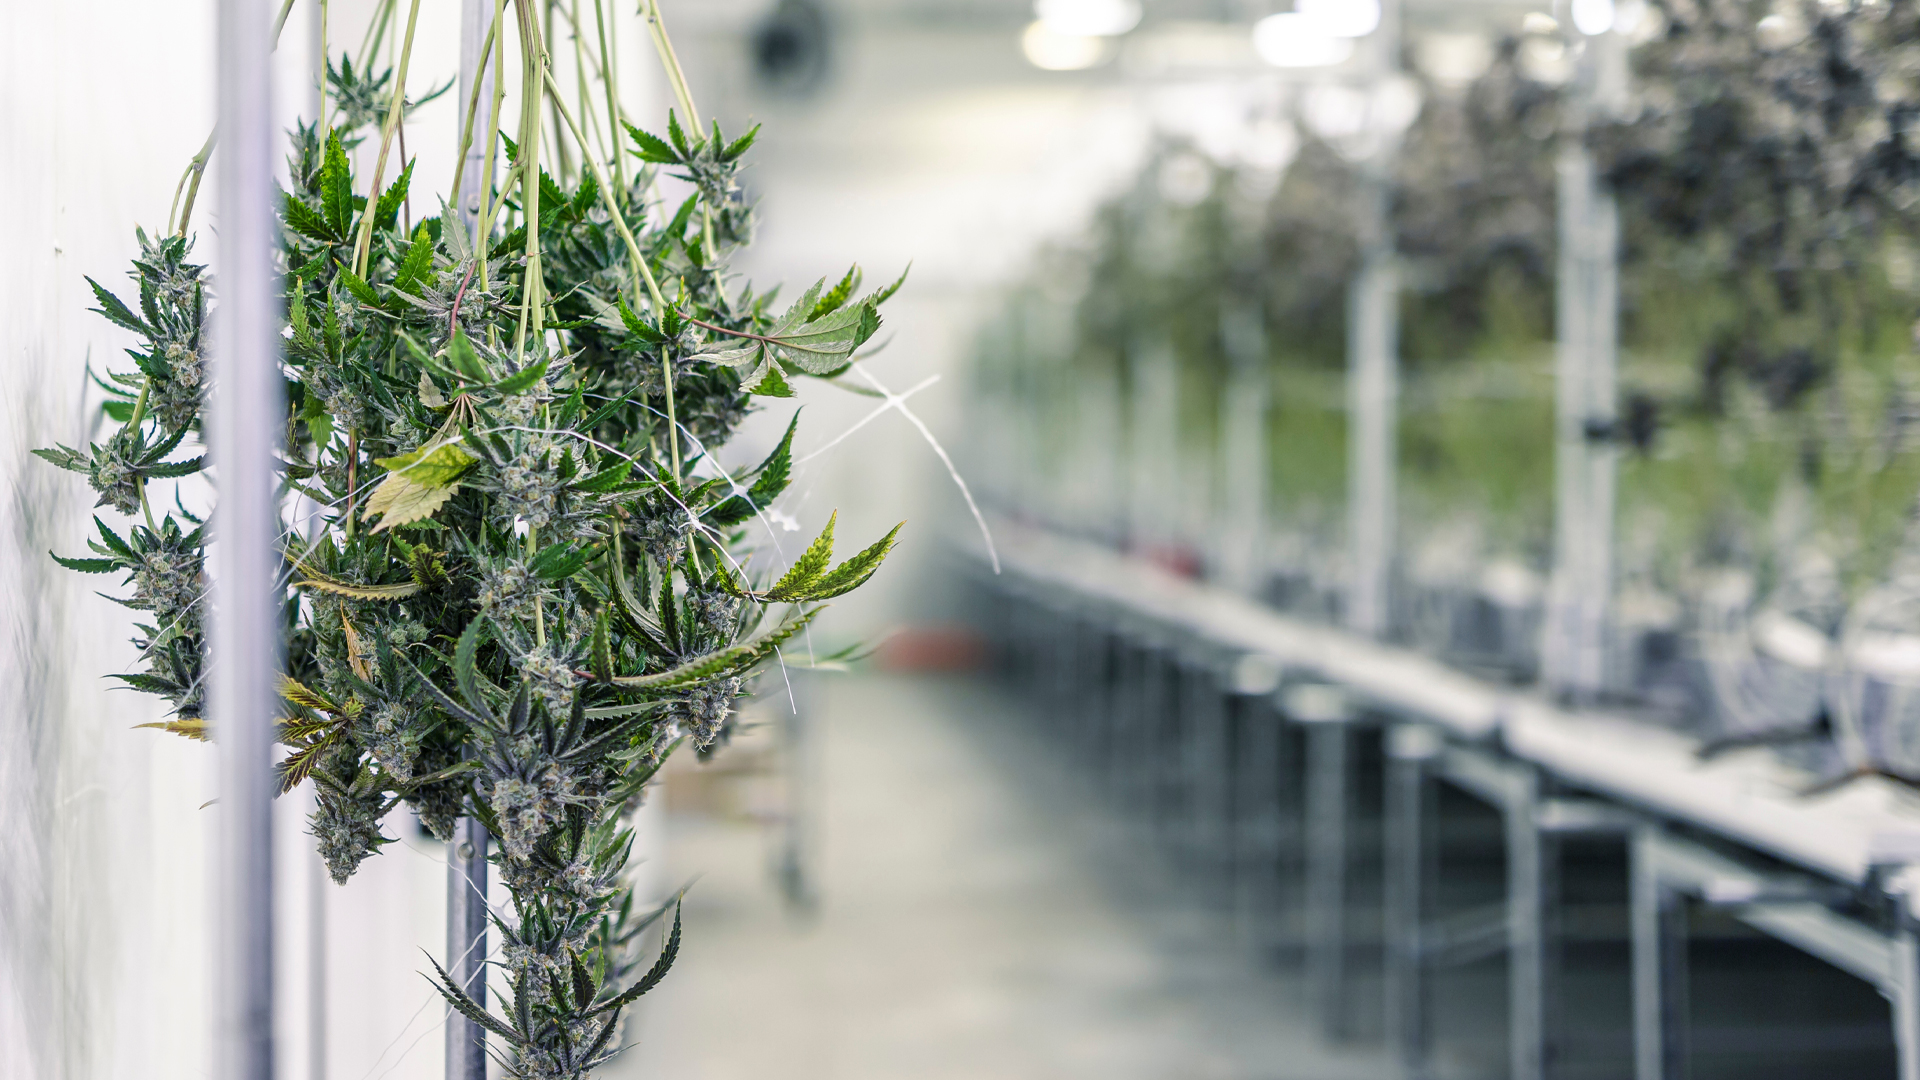 Commercial Cannabis Cultivation: Licences for Cultivating Cannabis in Canada